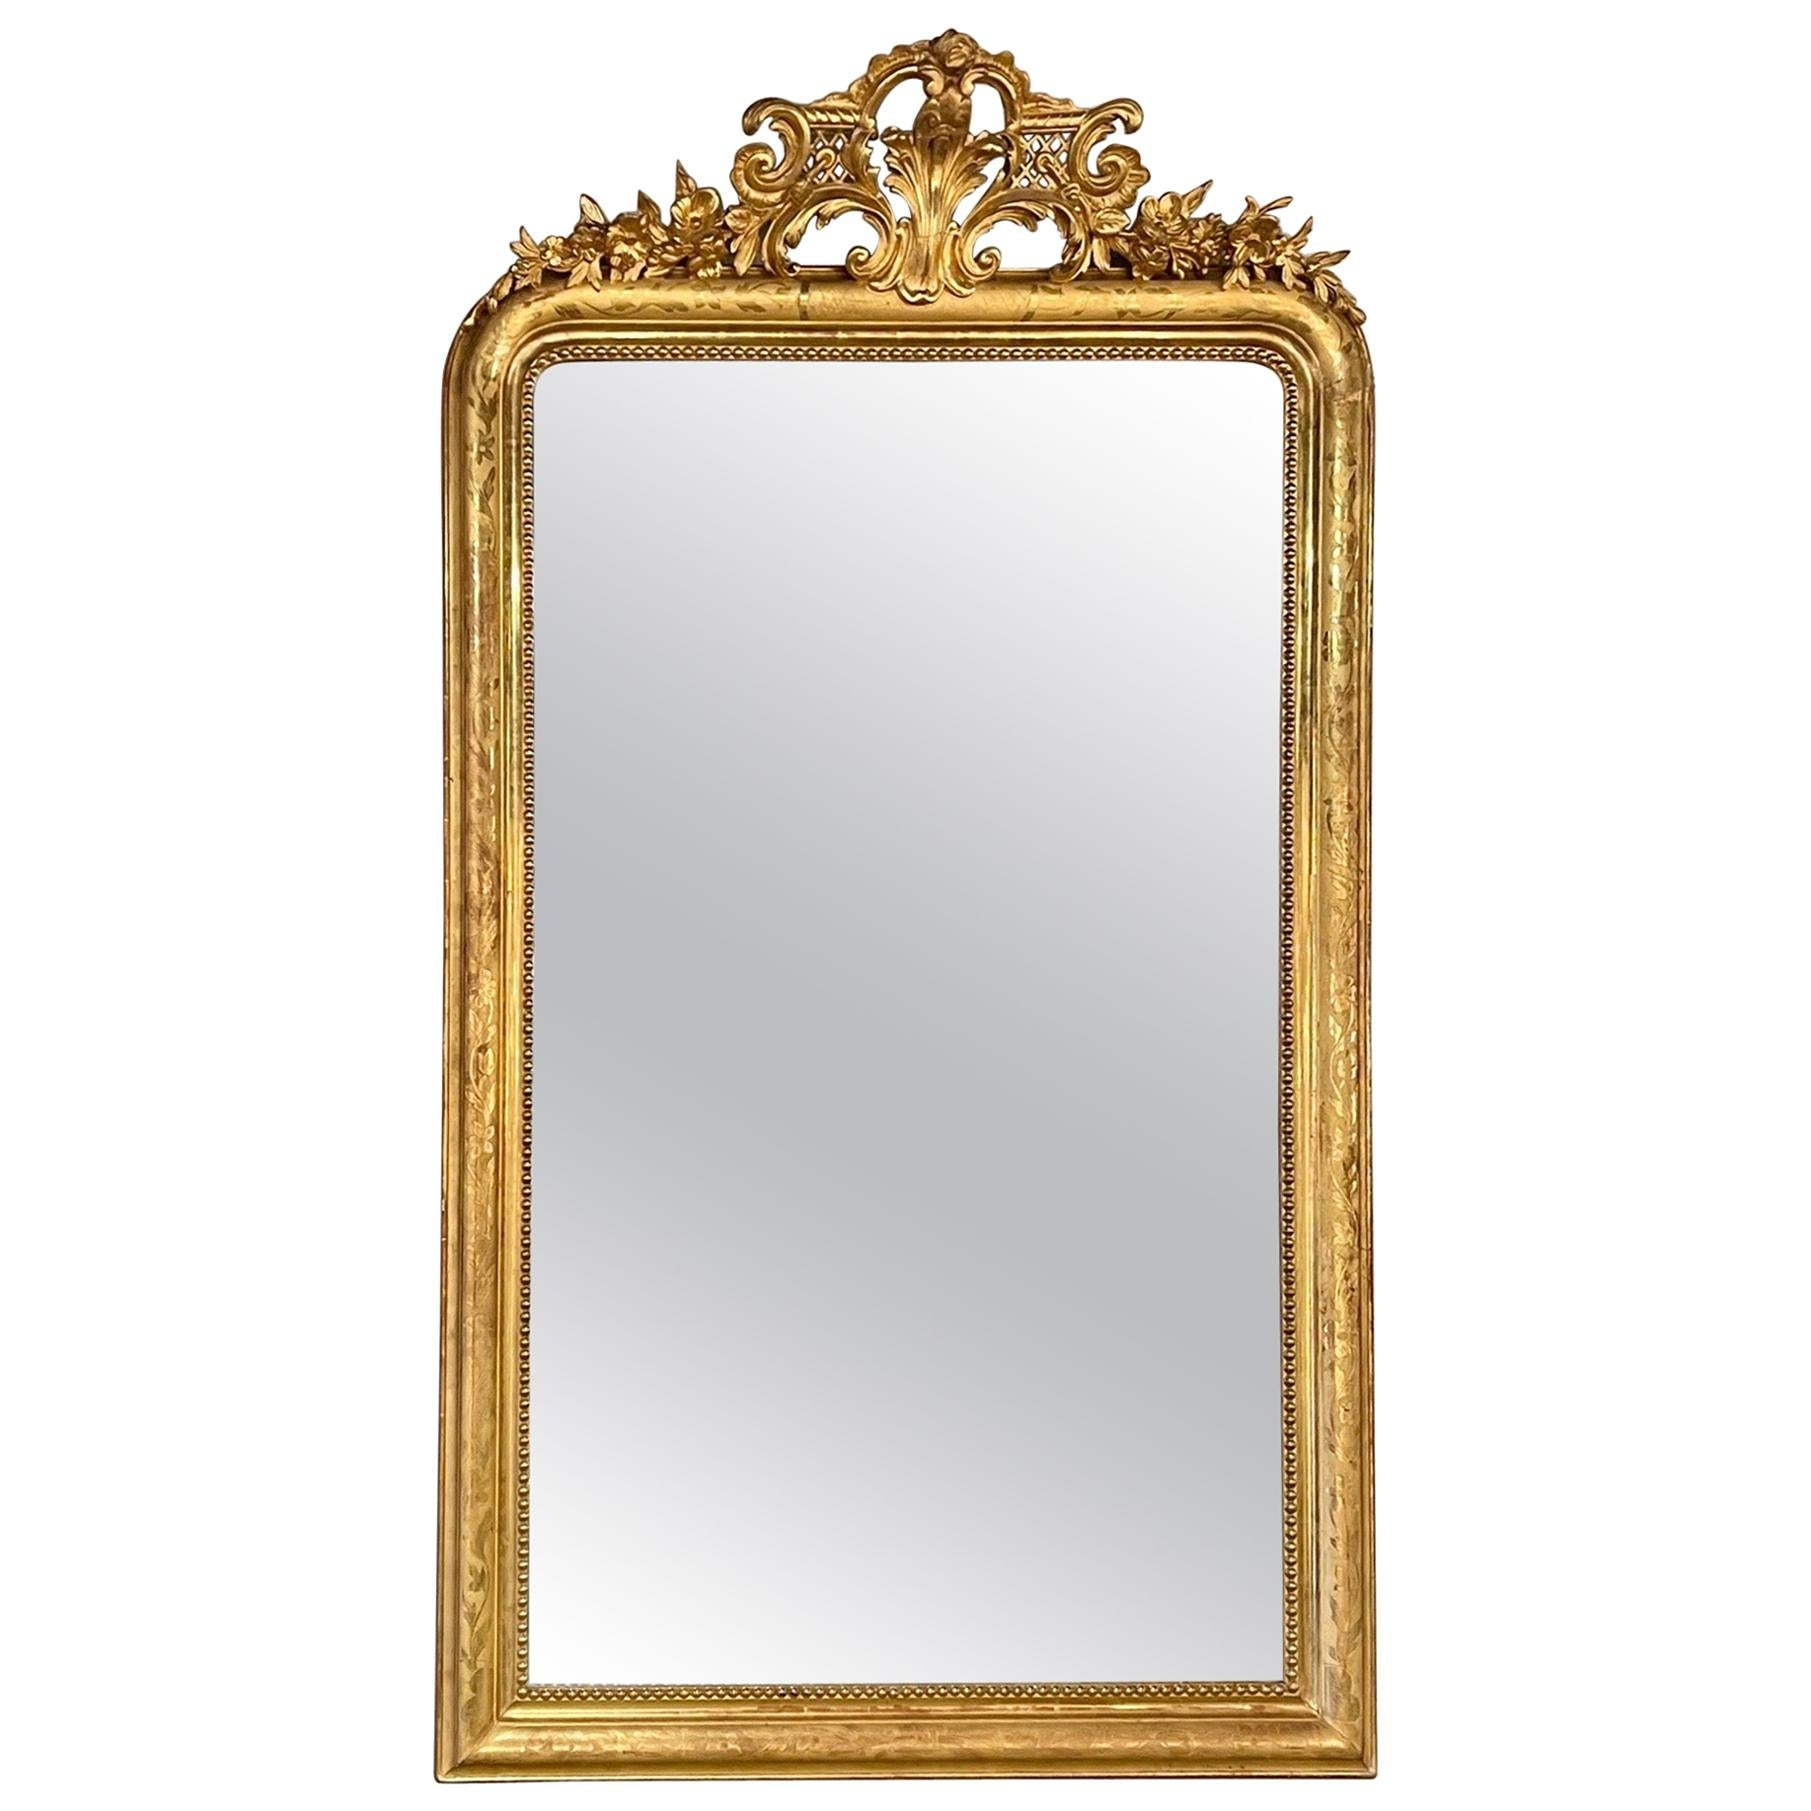 19th Century French Large Scale Gold Louis Philippe Mirror with Crest